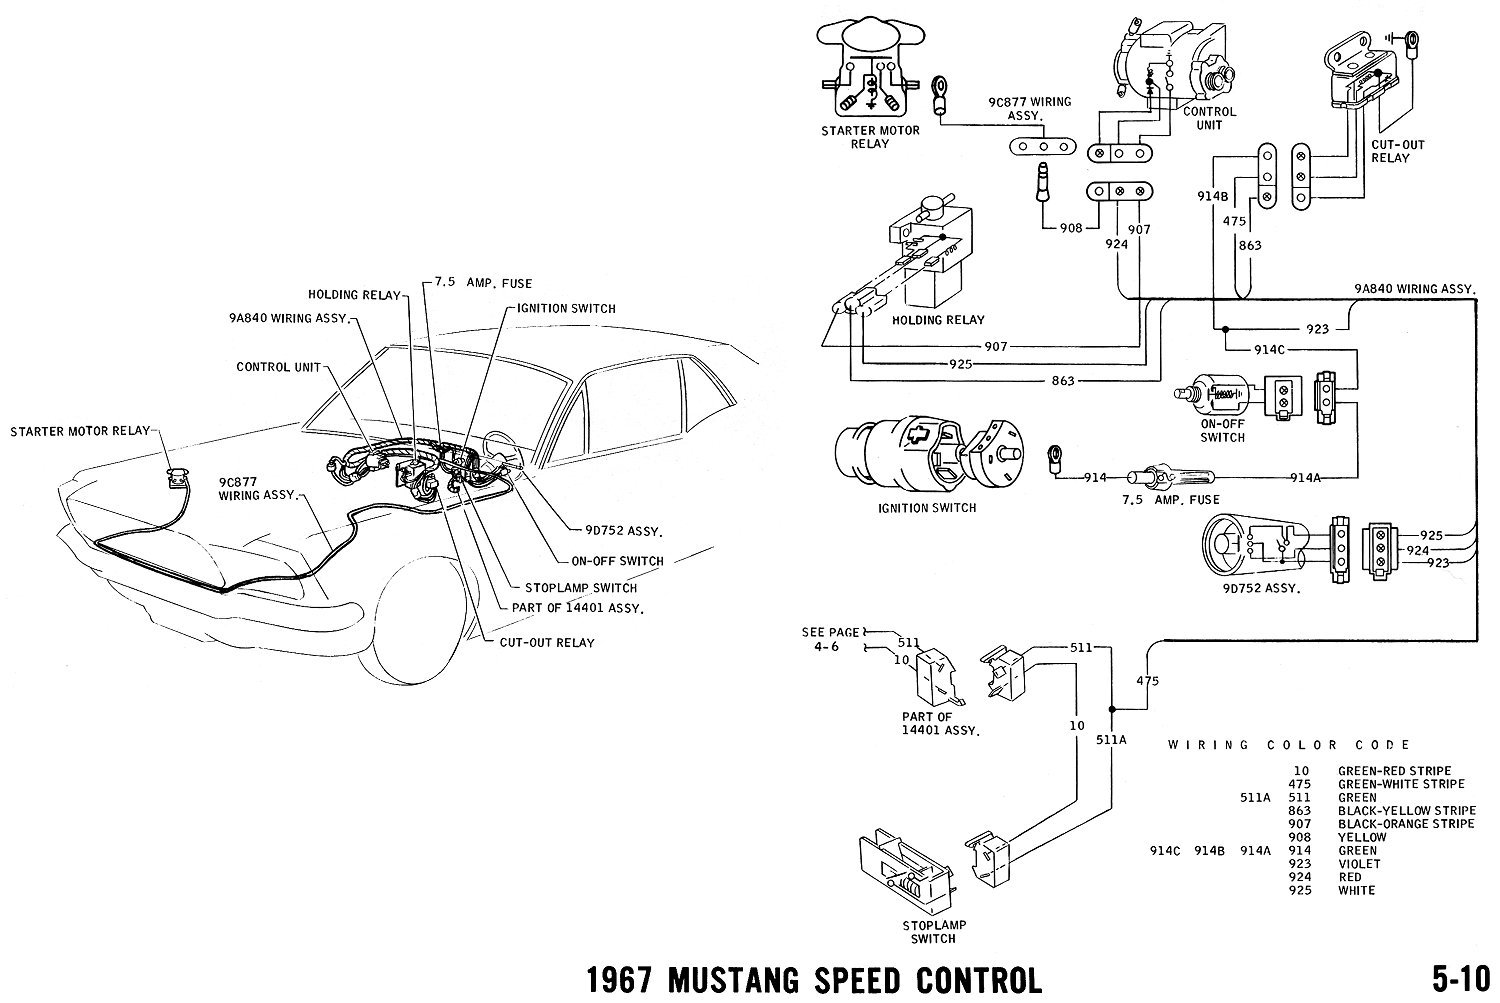 67speed 1967 mustang wiring diagram 1967 mustang radio wiring diagram 86 Mustang Wiring Diagram at panicattacktreatment.co